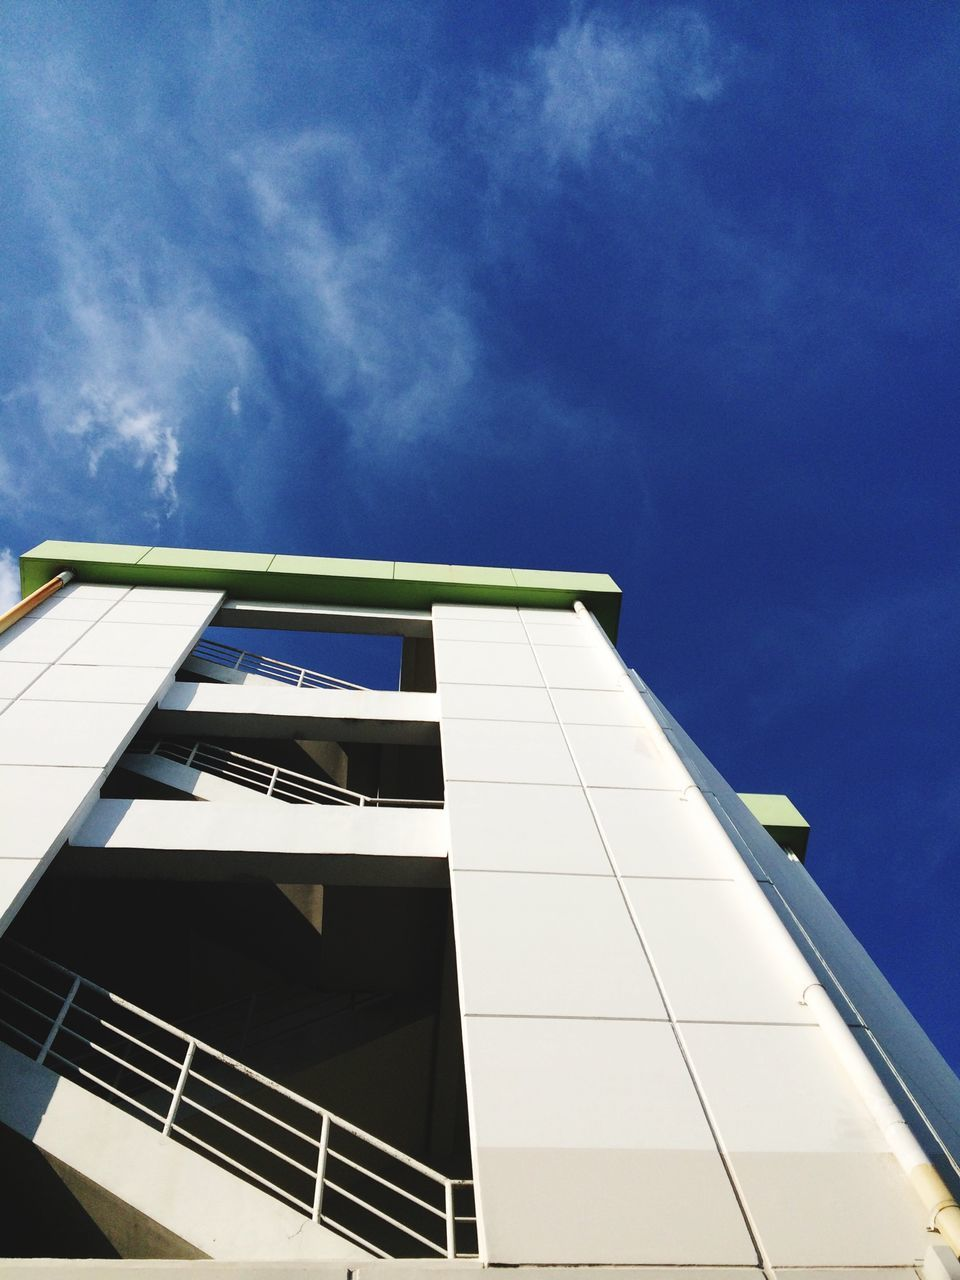 architecture, low angle view, sky, built structure, blue, building exterior, no people, day, outdoors